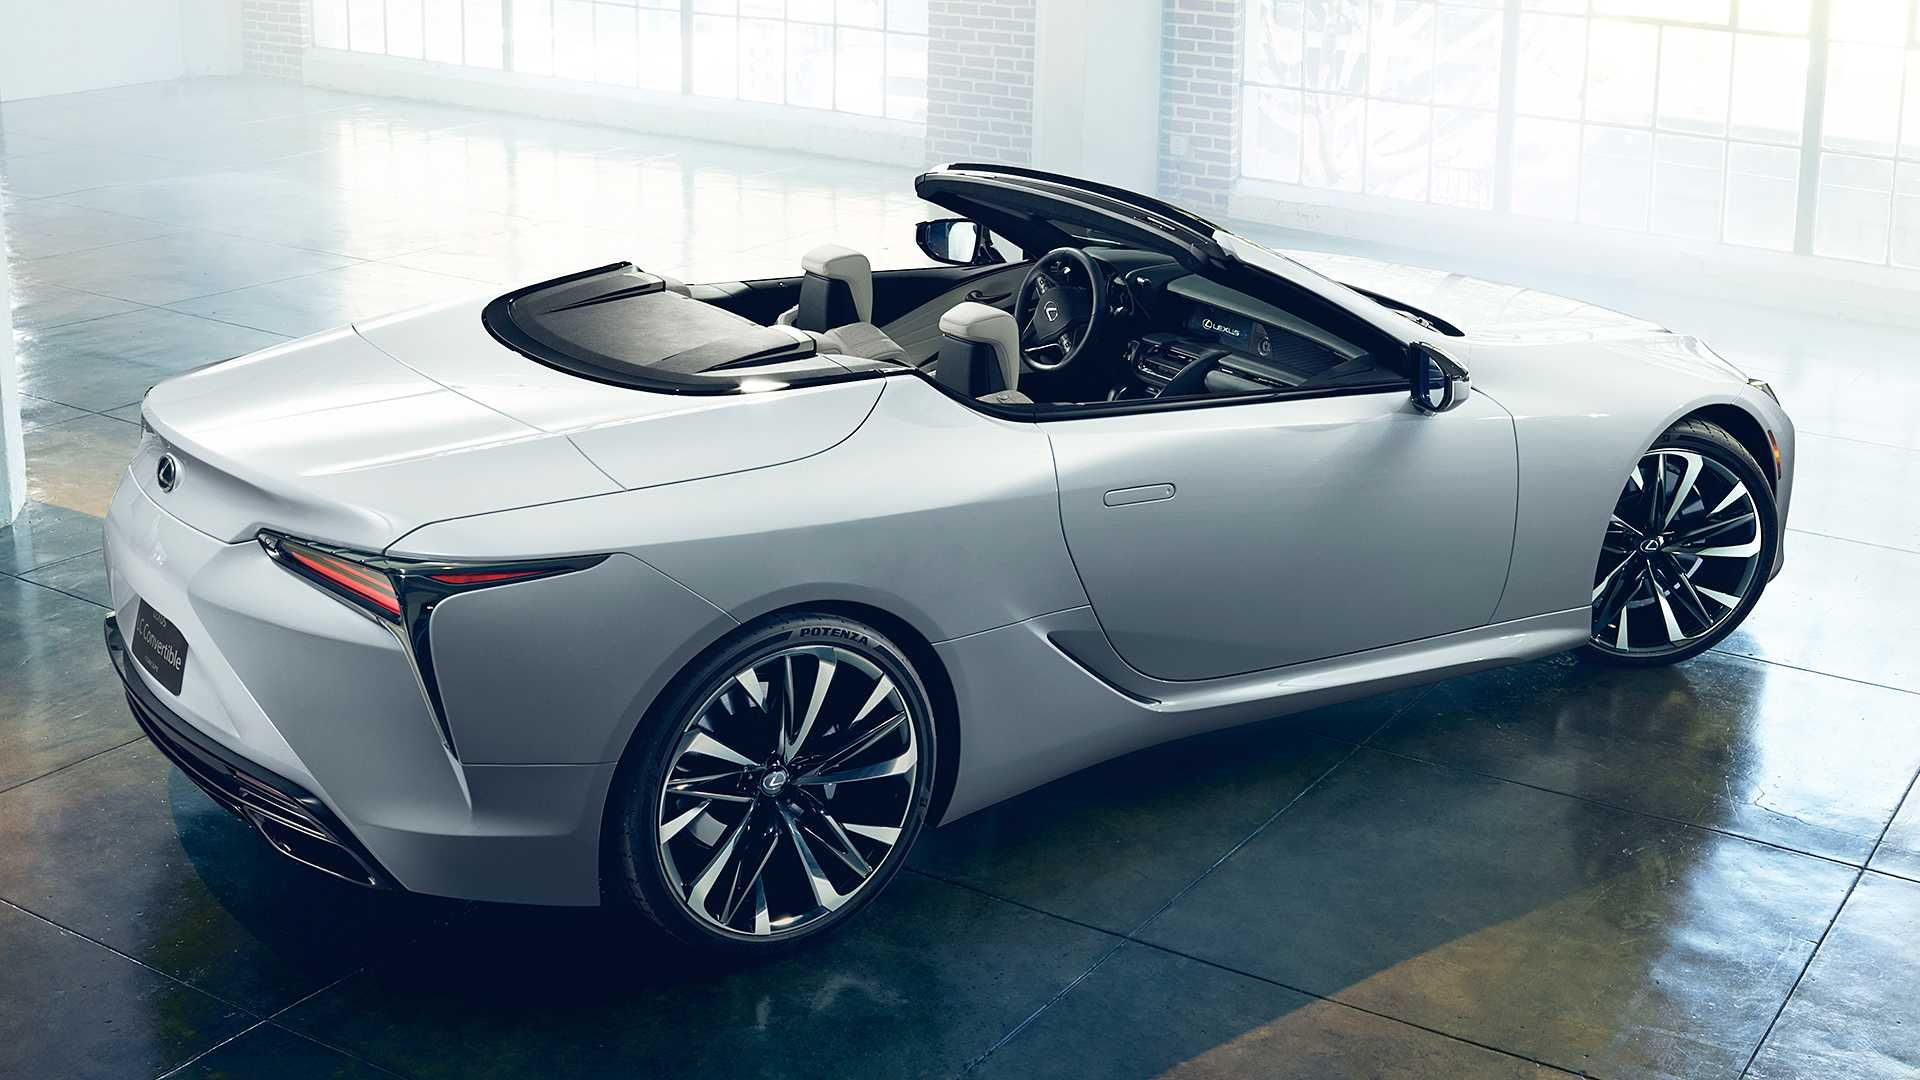 The Lexus LC Convertible Concept previews a stylish open